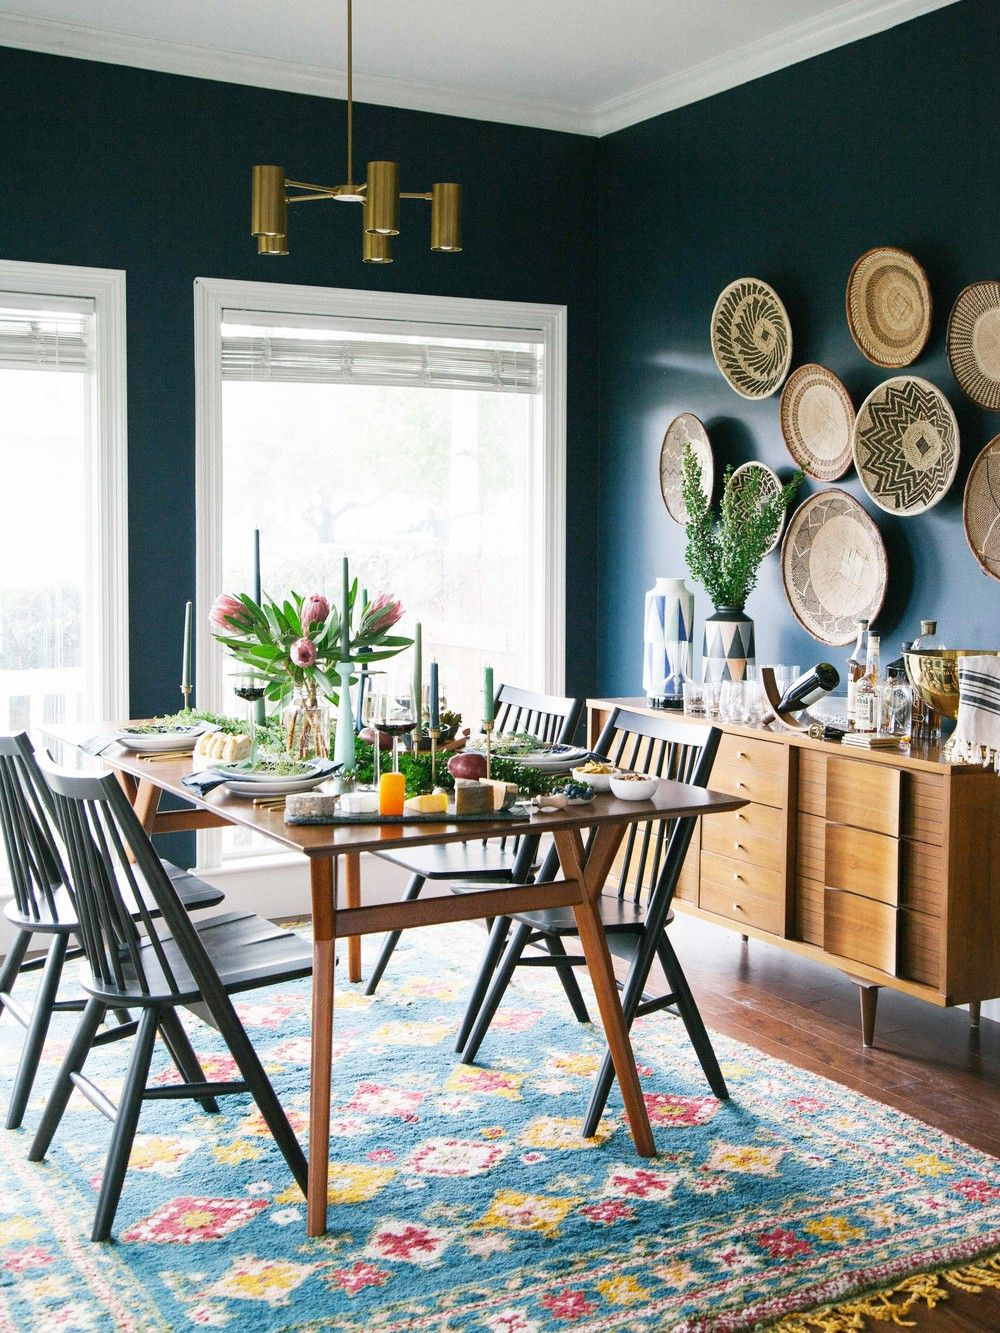 7 beautiful bohemian dining rooms we love blue walls clutter